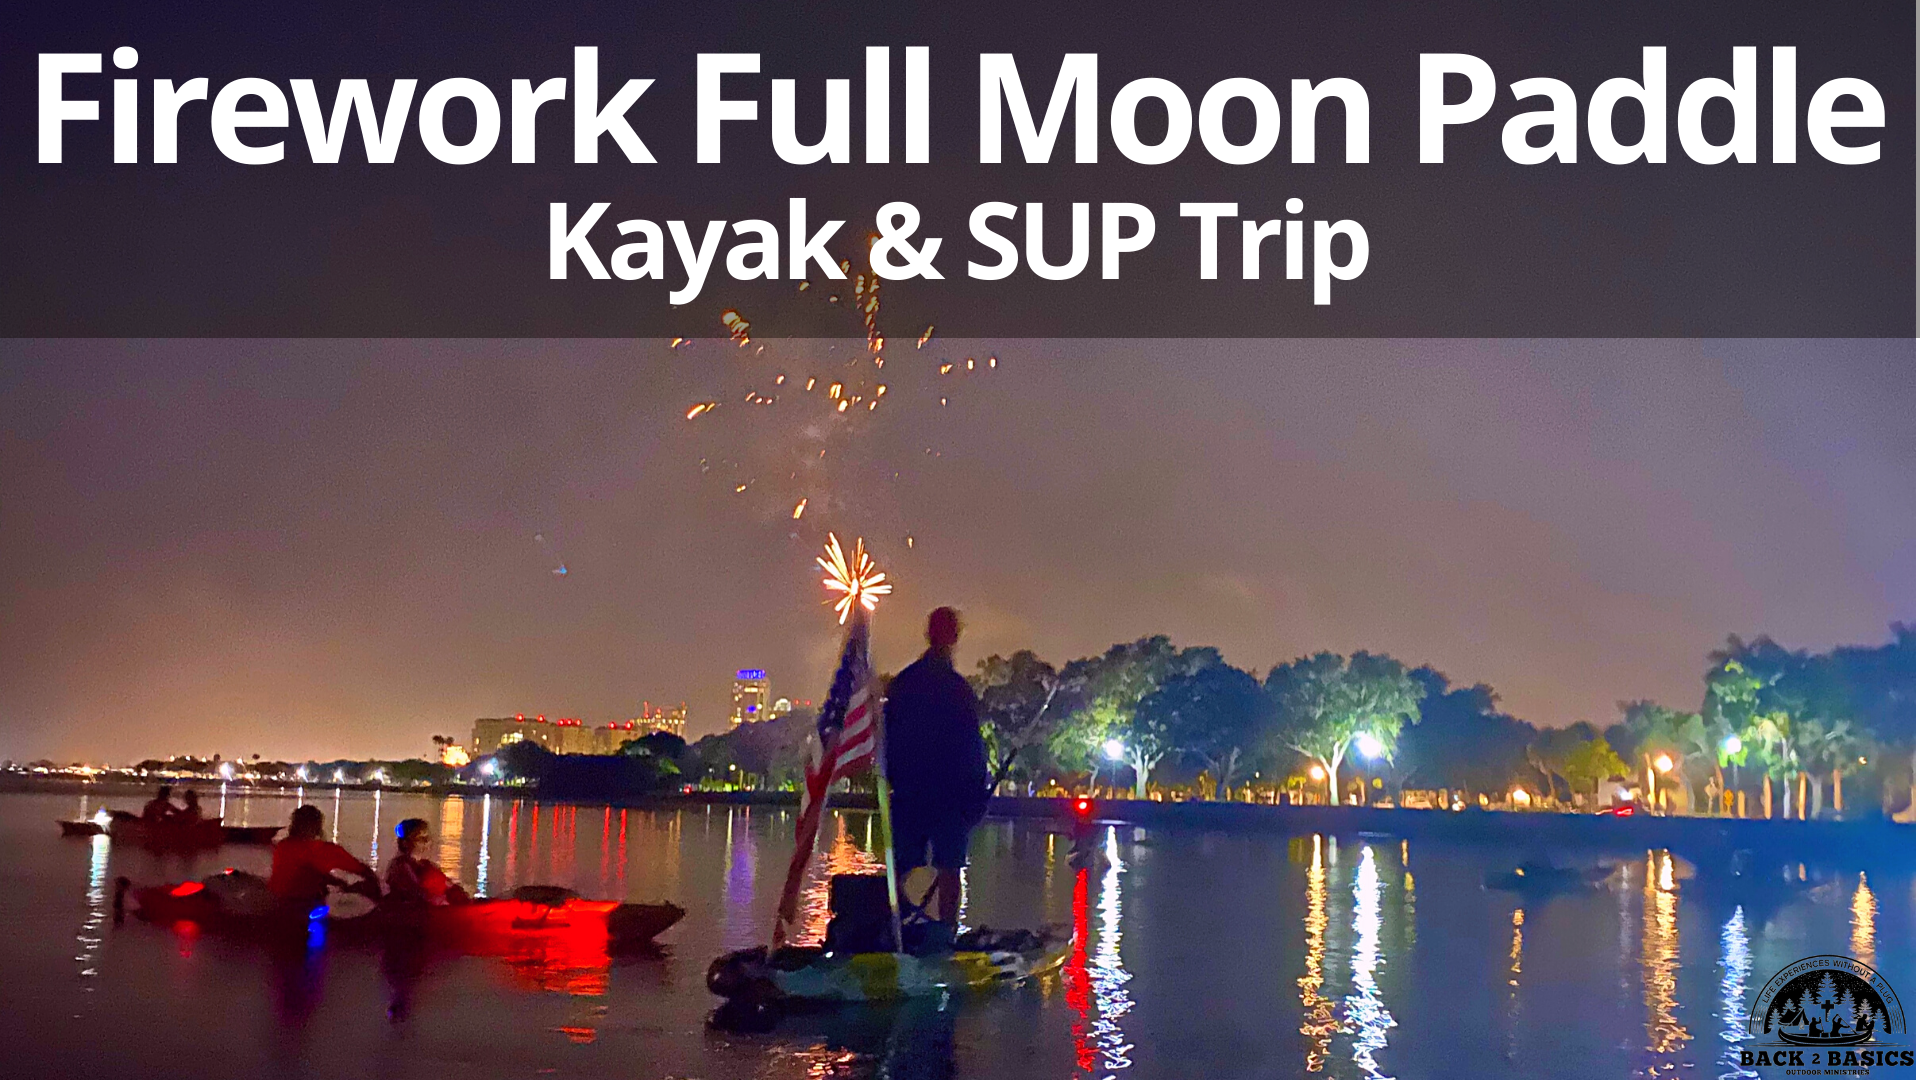 firework full moon paddle adventure, 4th of july paddle, back2basics outdoor ministries